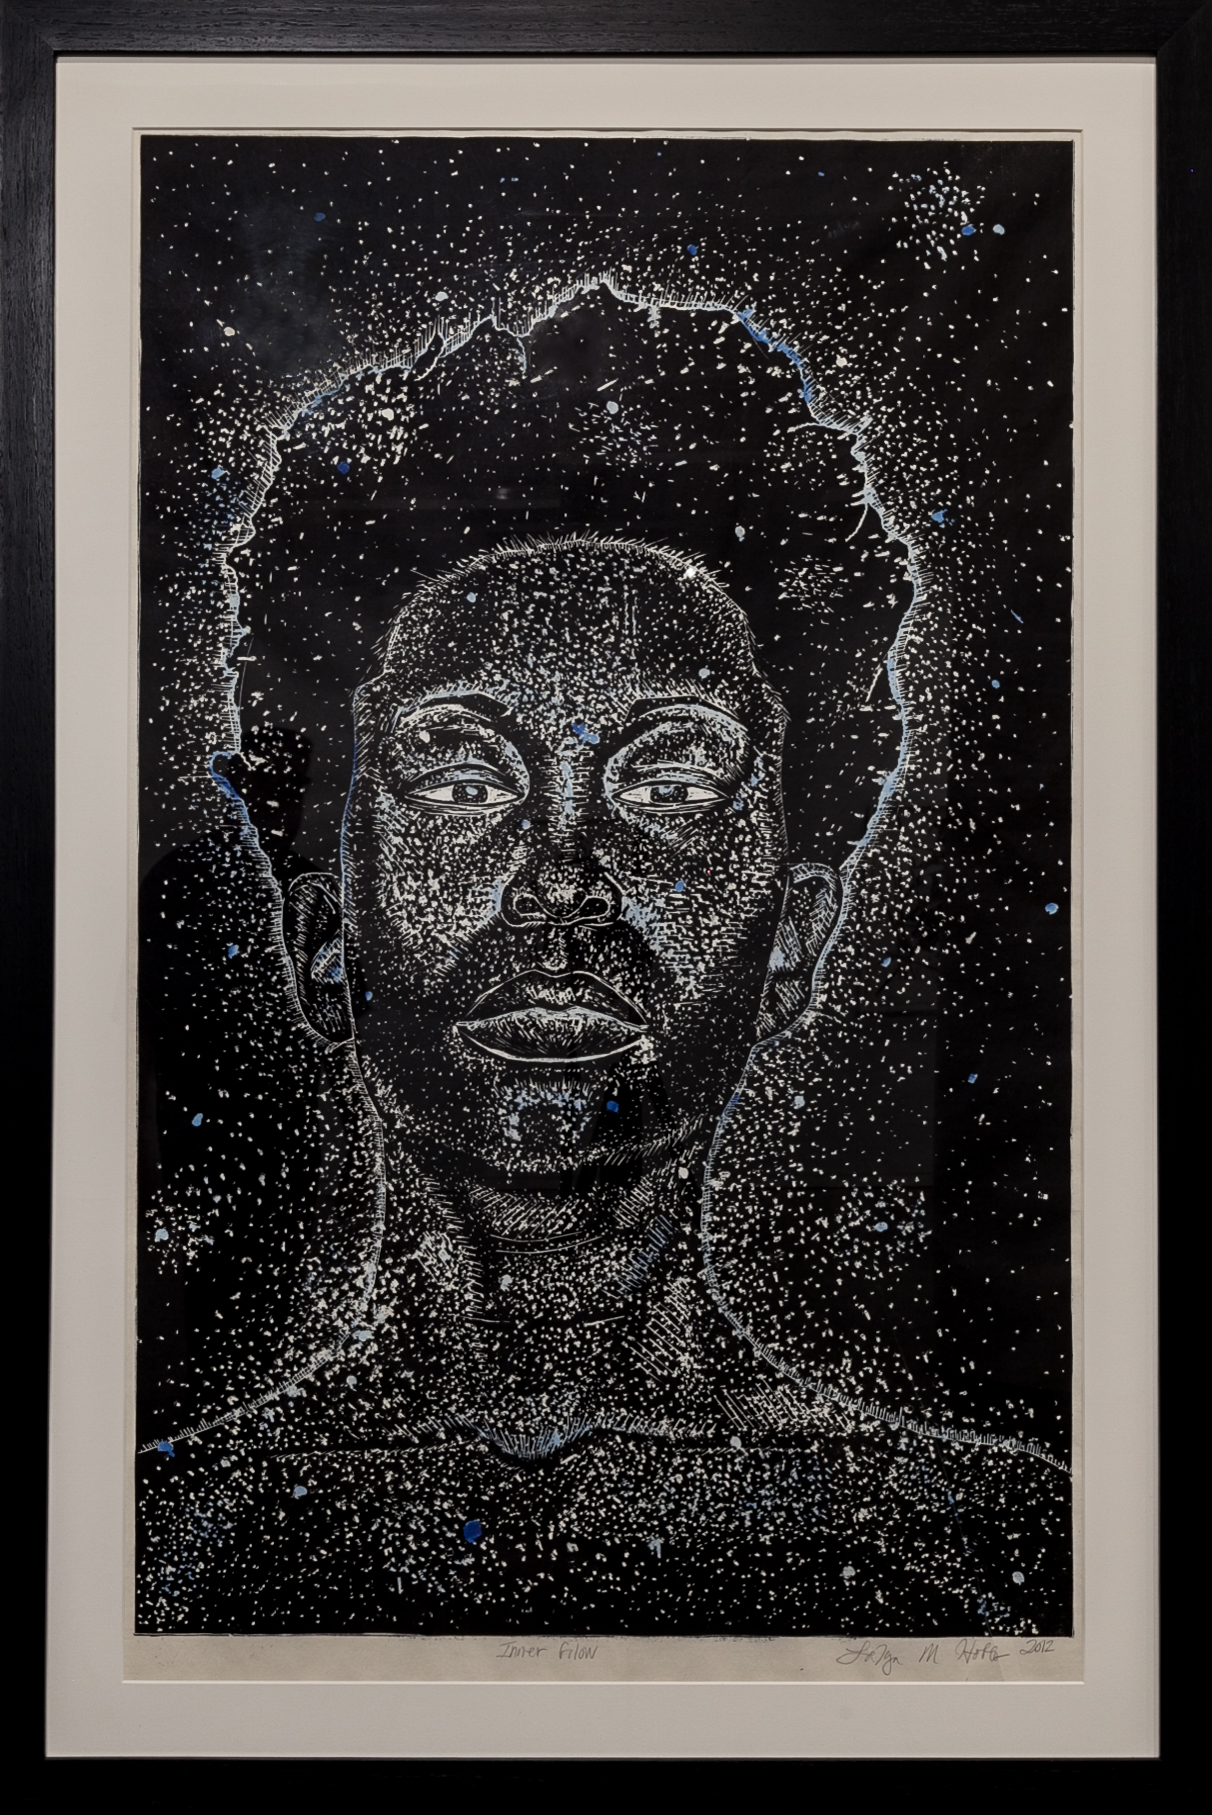 LaToya M. Hobbs   Inner Glow , 2012  Medium: Woodcut on paper  Dimensions: 50x34 inches